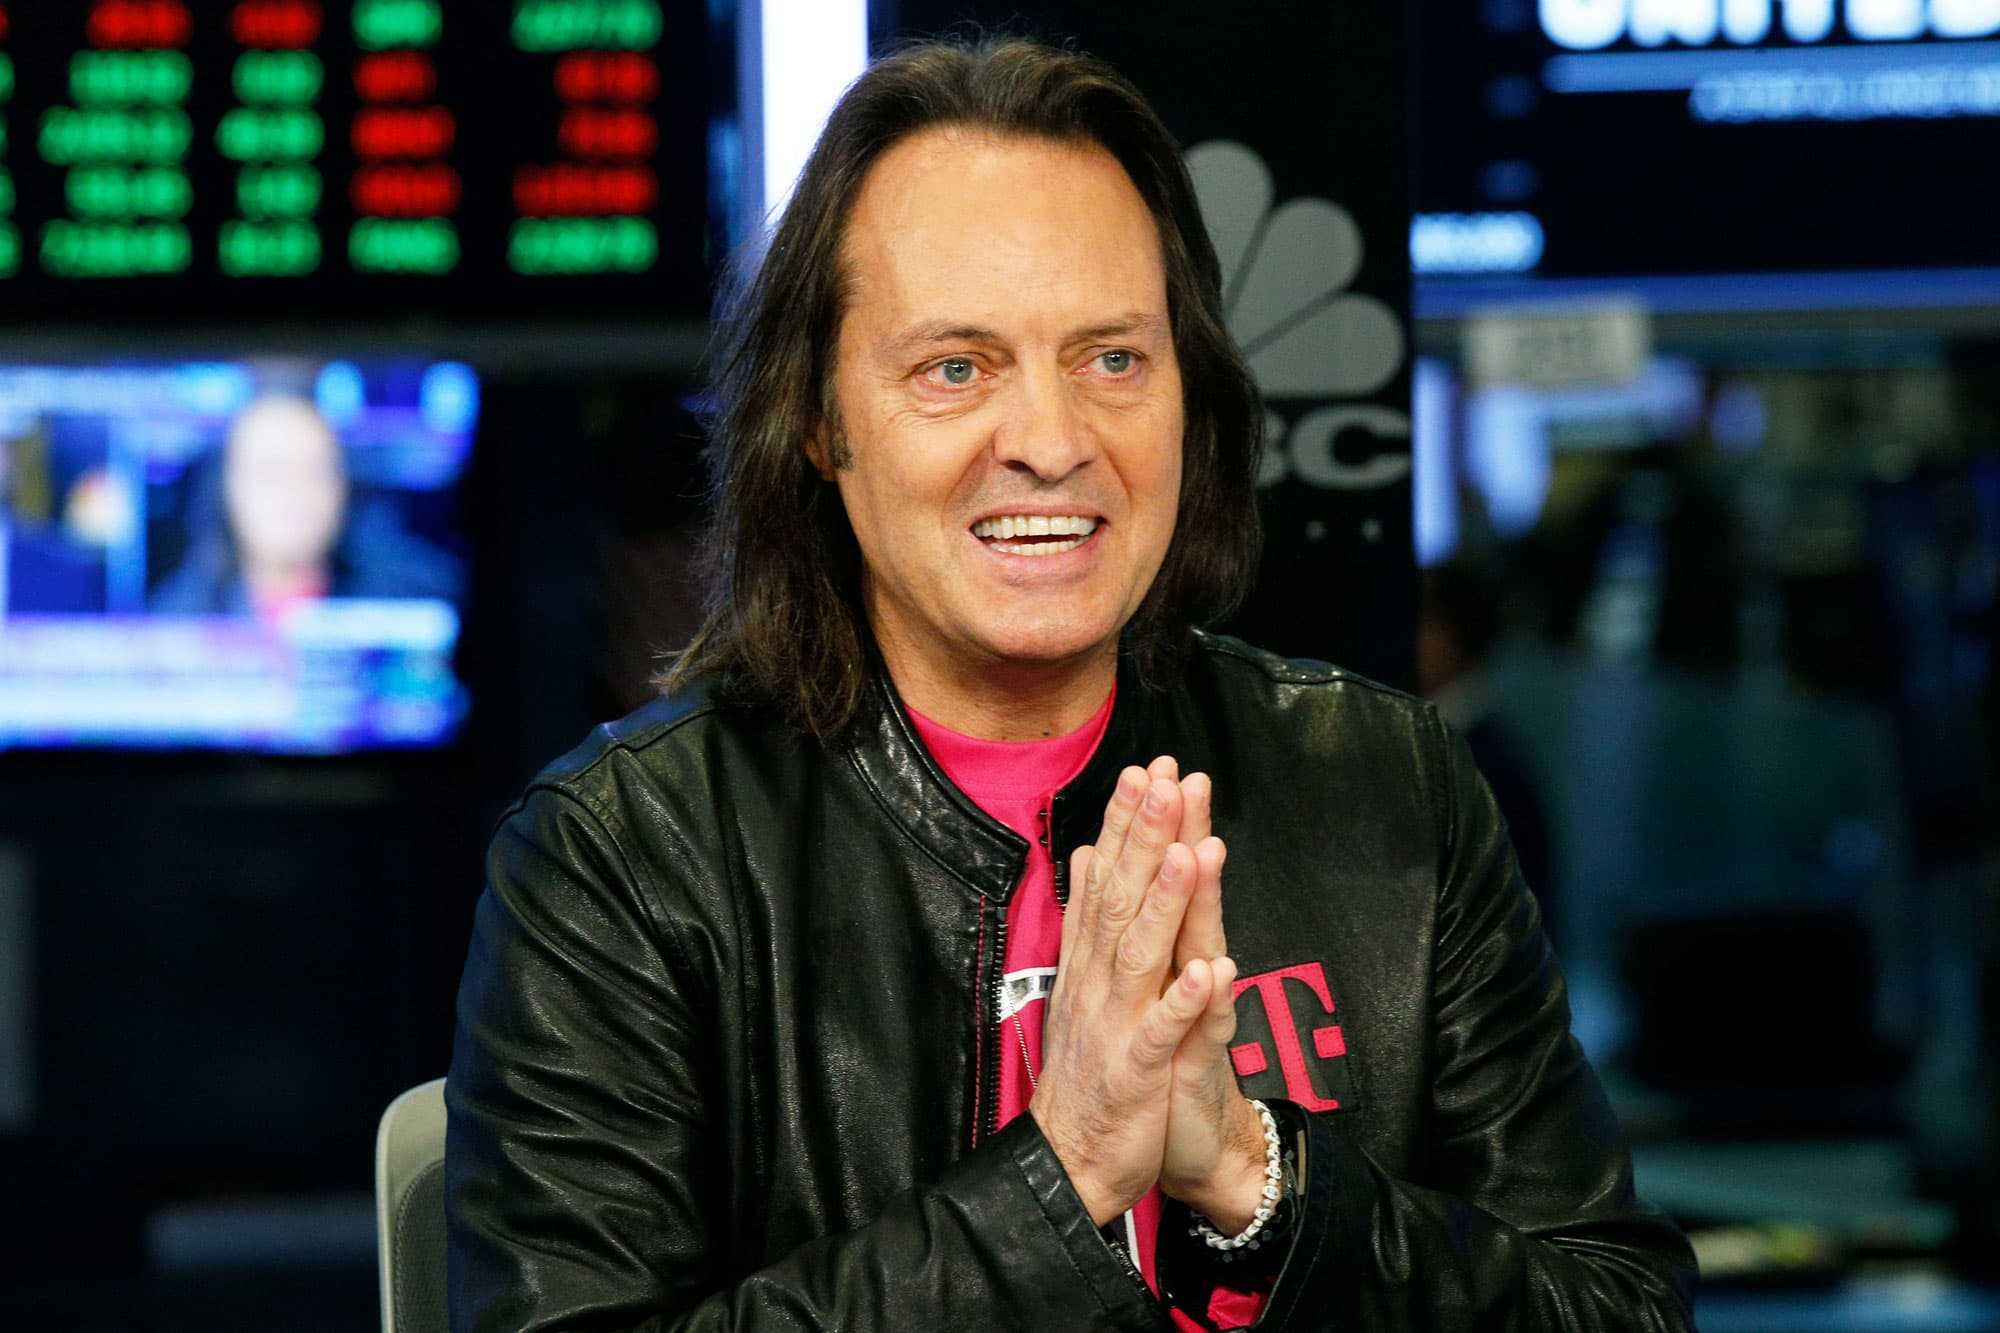 John Legere to step down as T-Mobile CEO next year